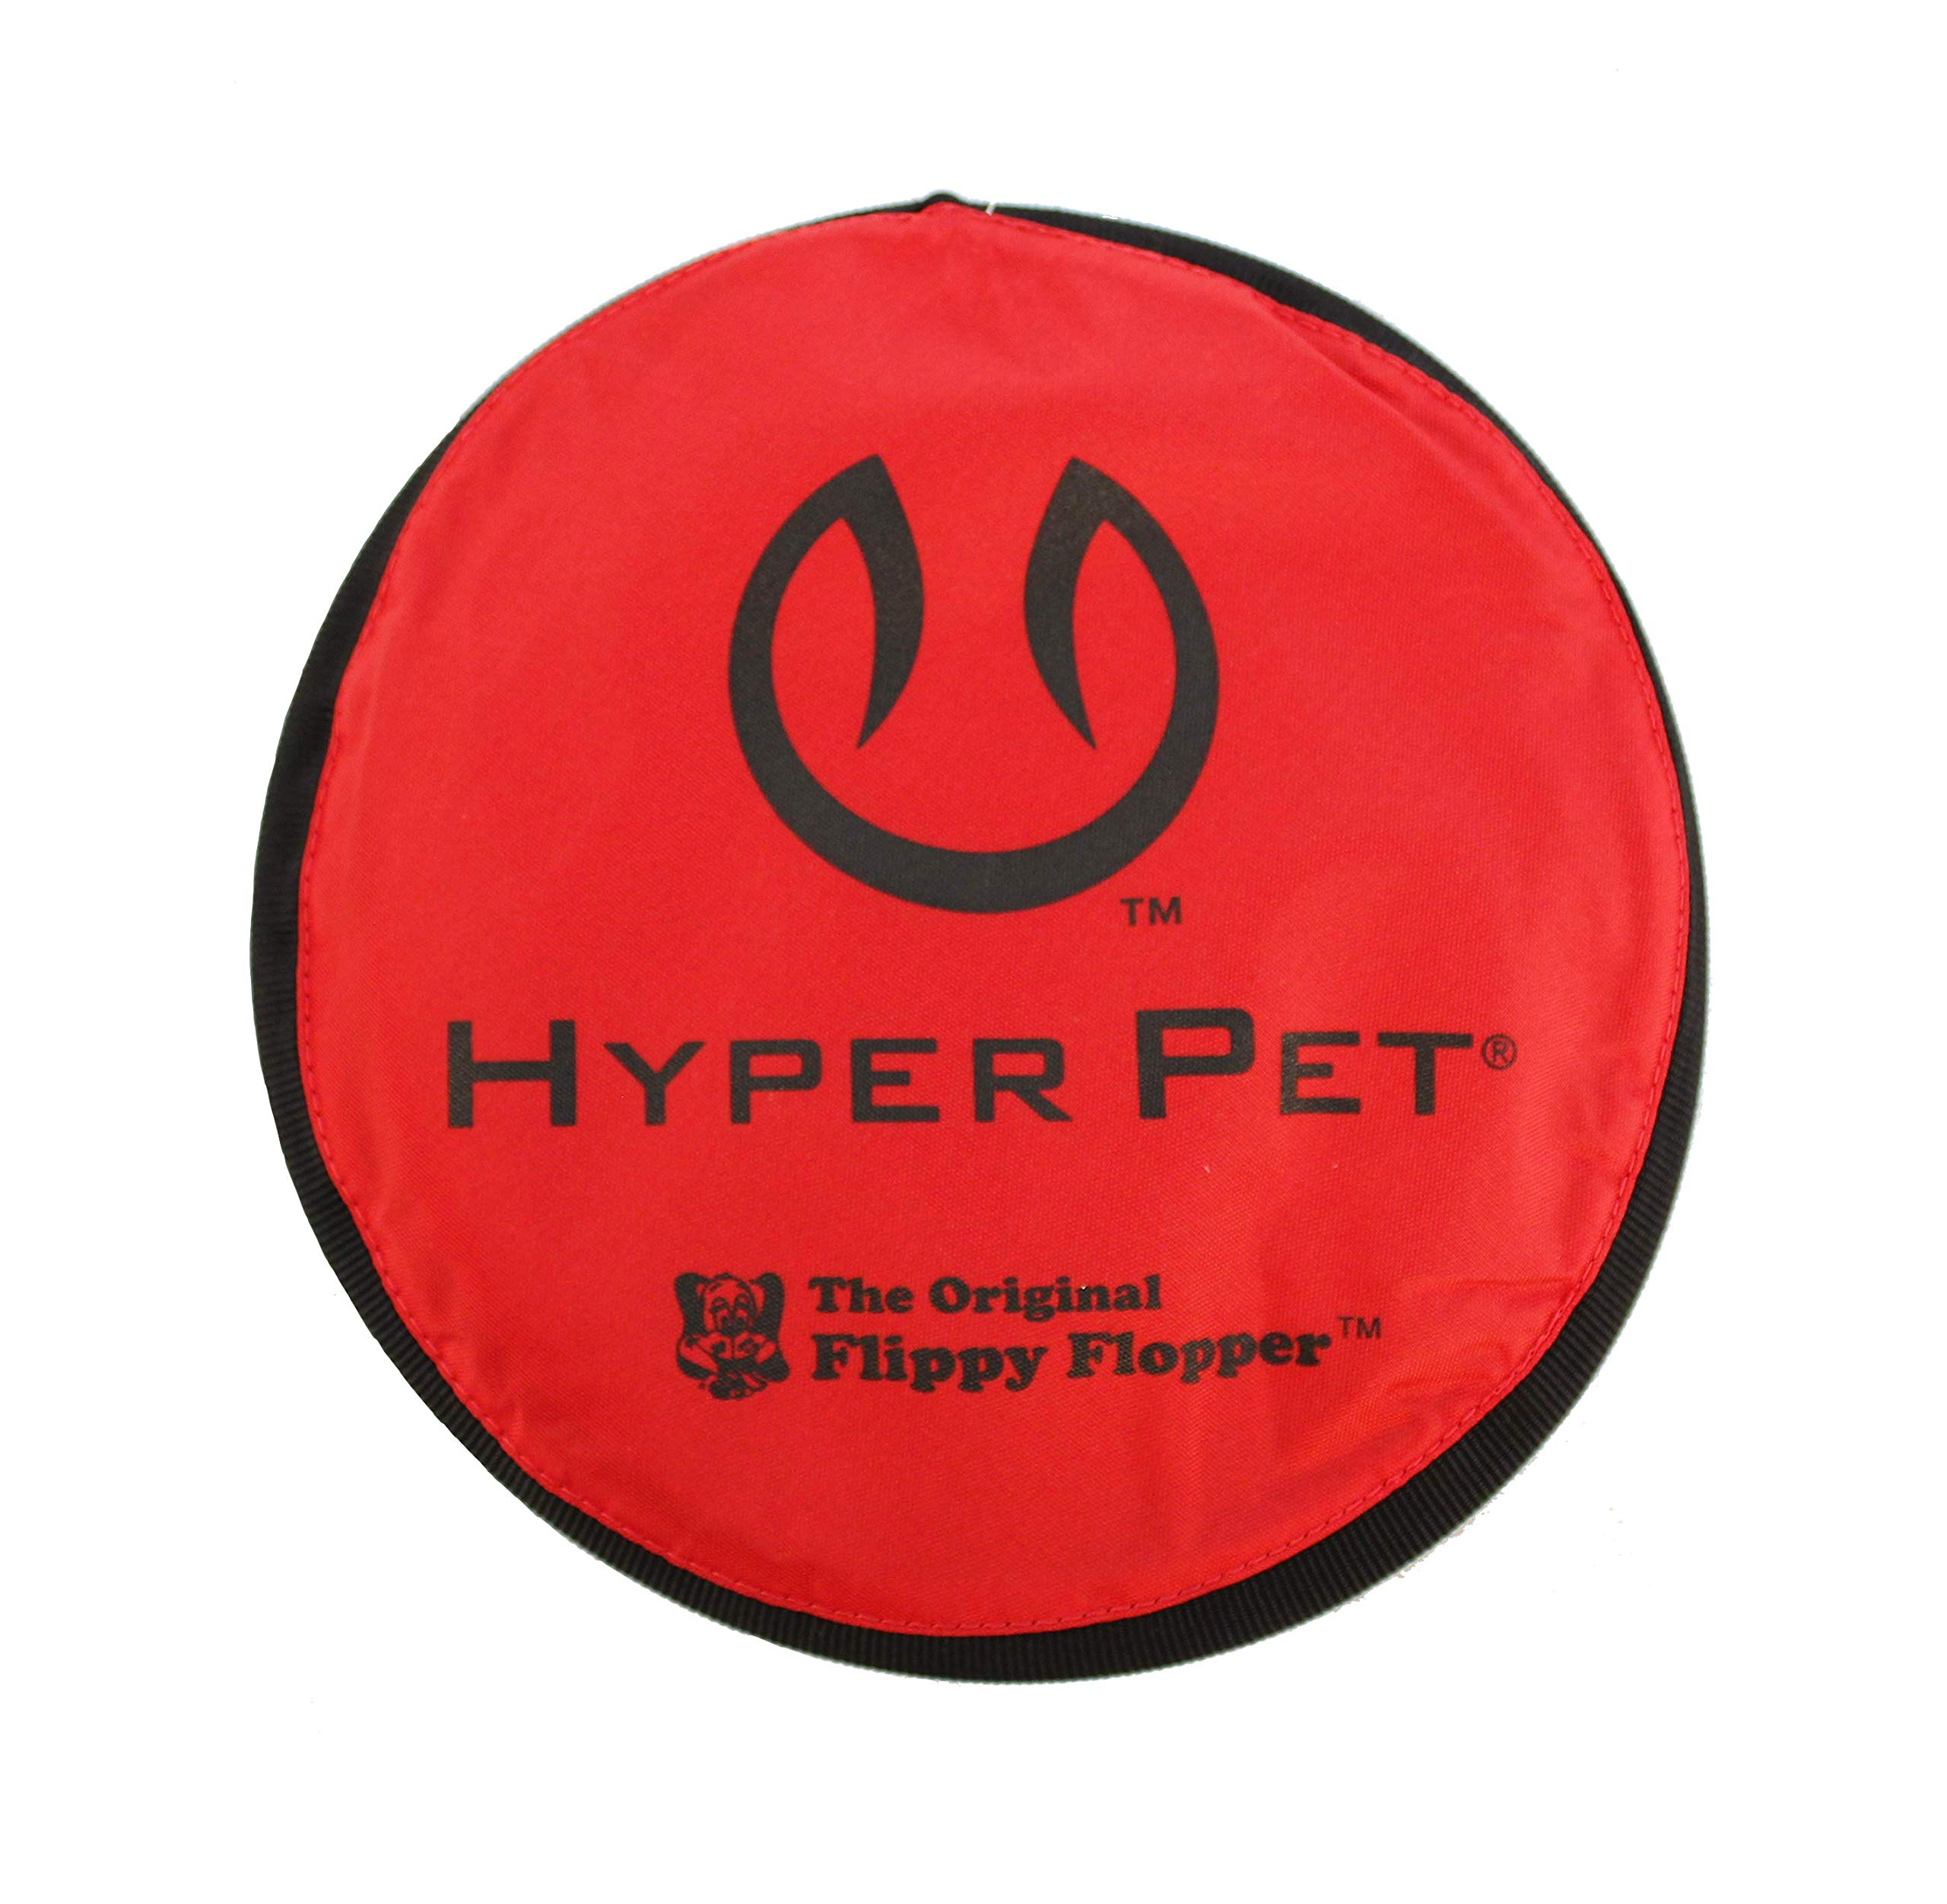 Hyper Pet Flippy Flopper Soft Dog Frisbee Interactive Dog Toy, Colors May Vary, Multicolor, 9''